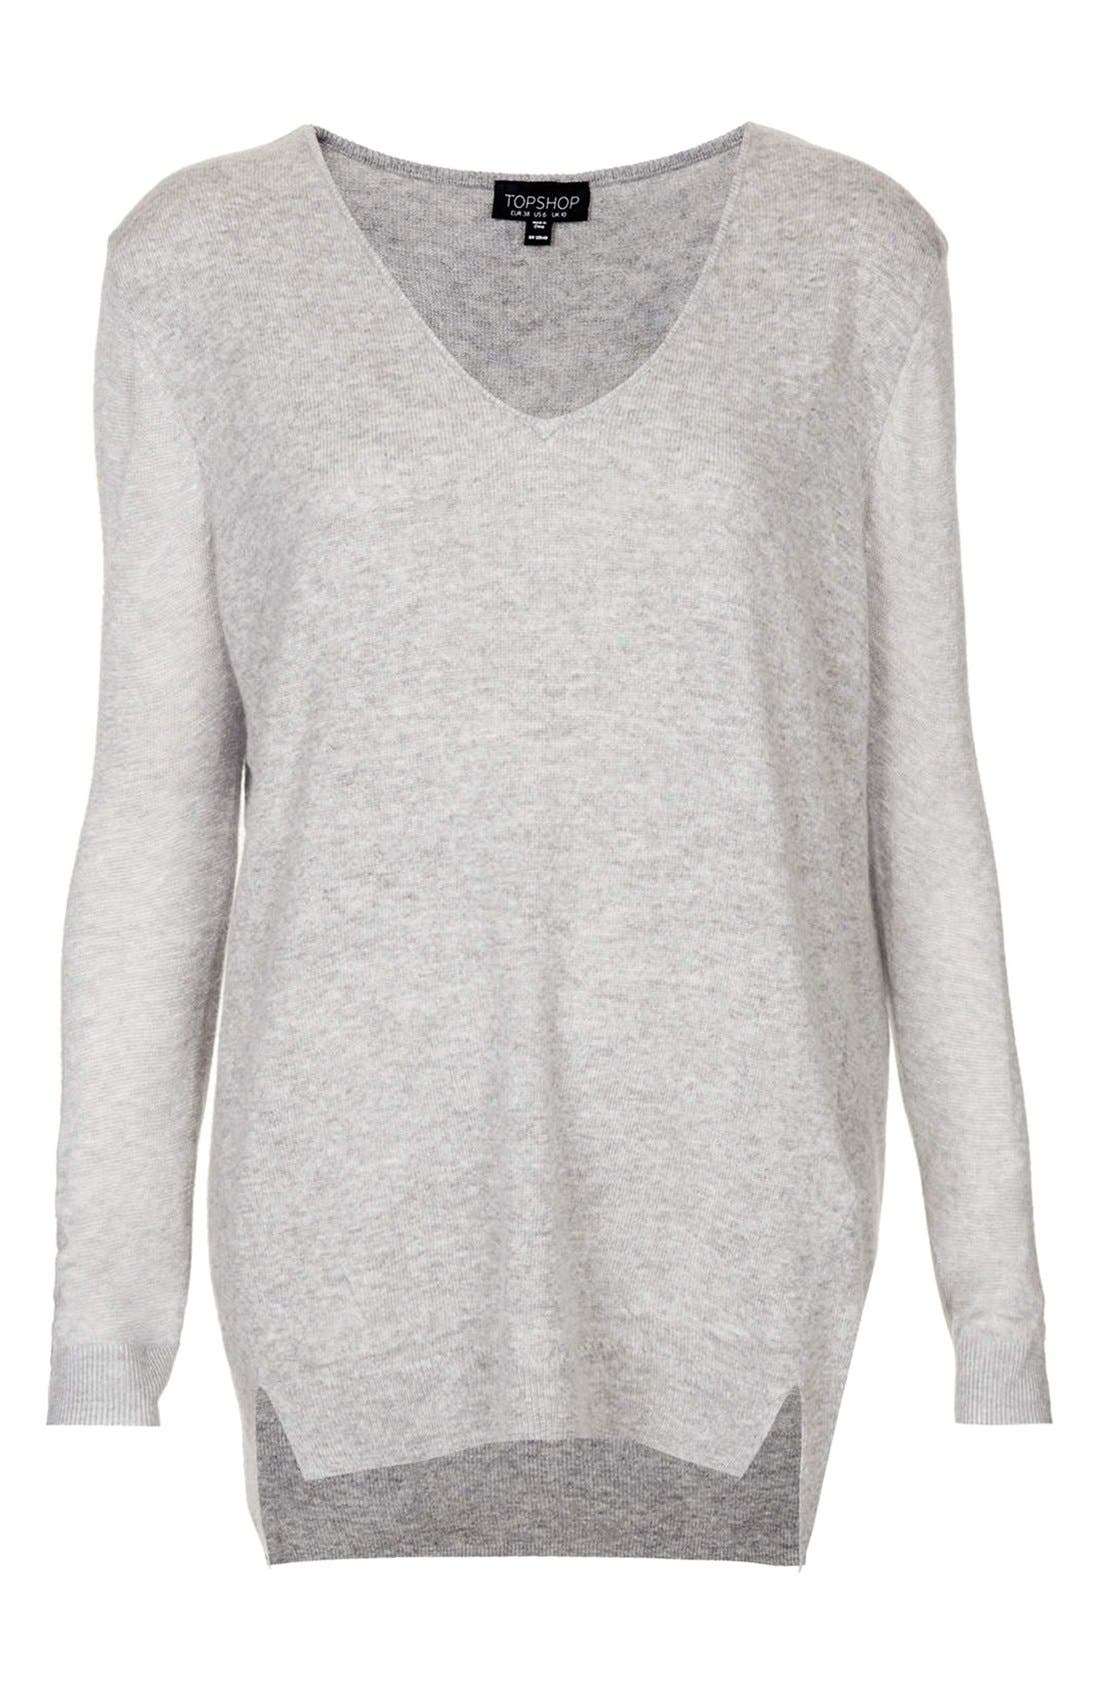 TOPSHOP, Sheer Sleeve Tunic Sweater, Alternate thumbnail 2, color, 050